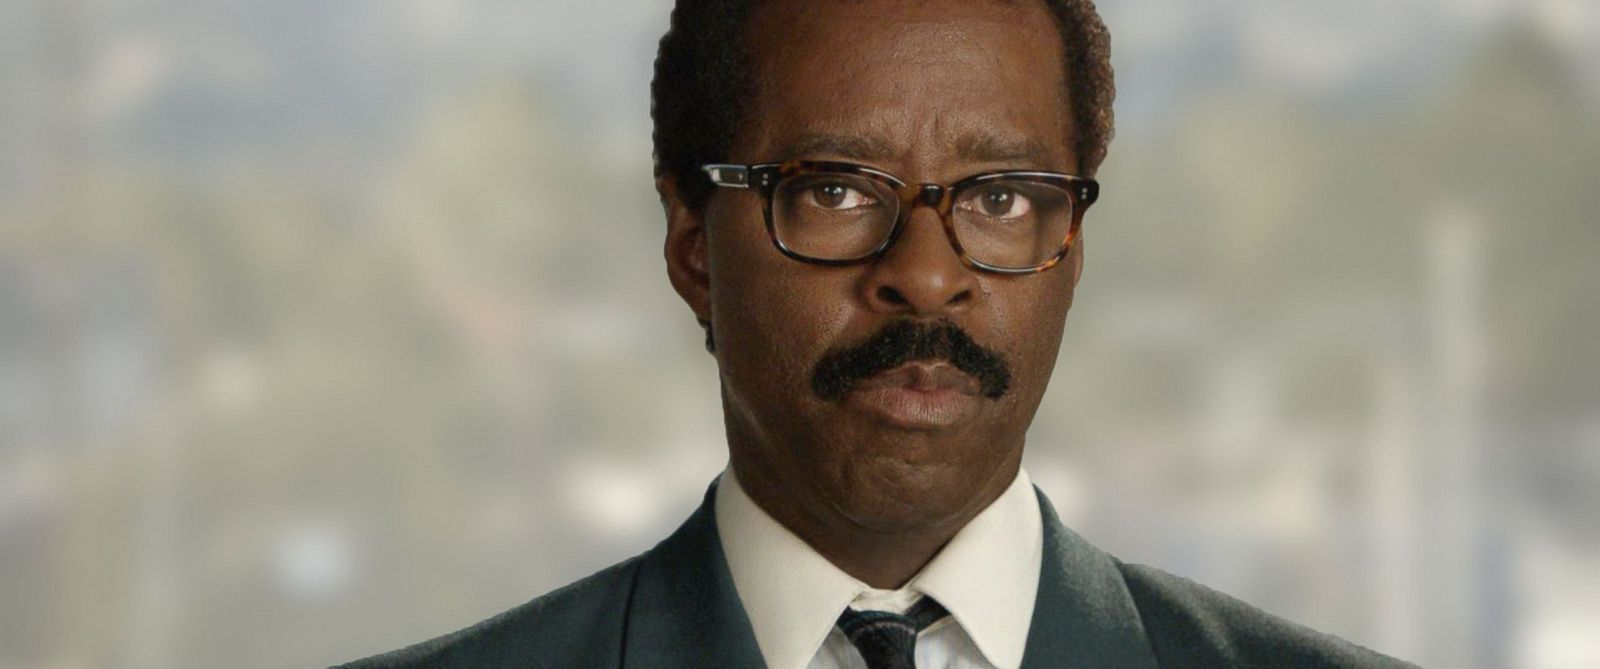 "PHOTO: Pictured is Courtney Vance as Johnnie Cochran in ""American Crime Story: The People v. O.J. Simpson."""